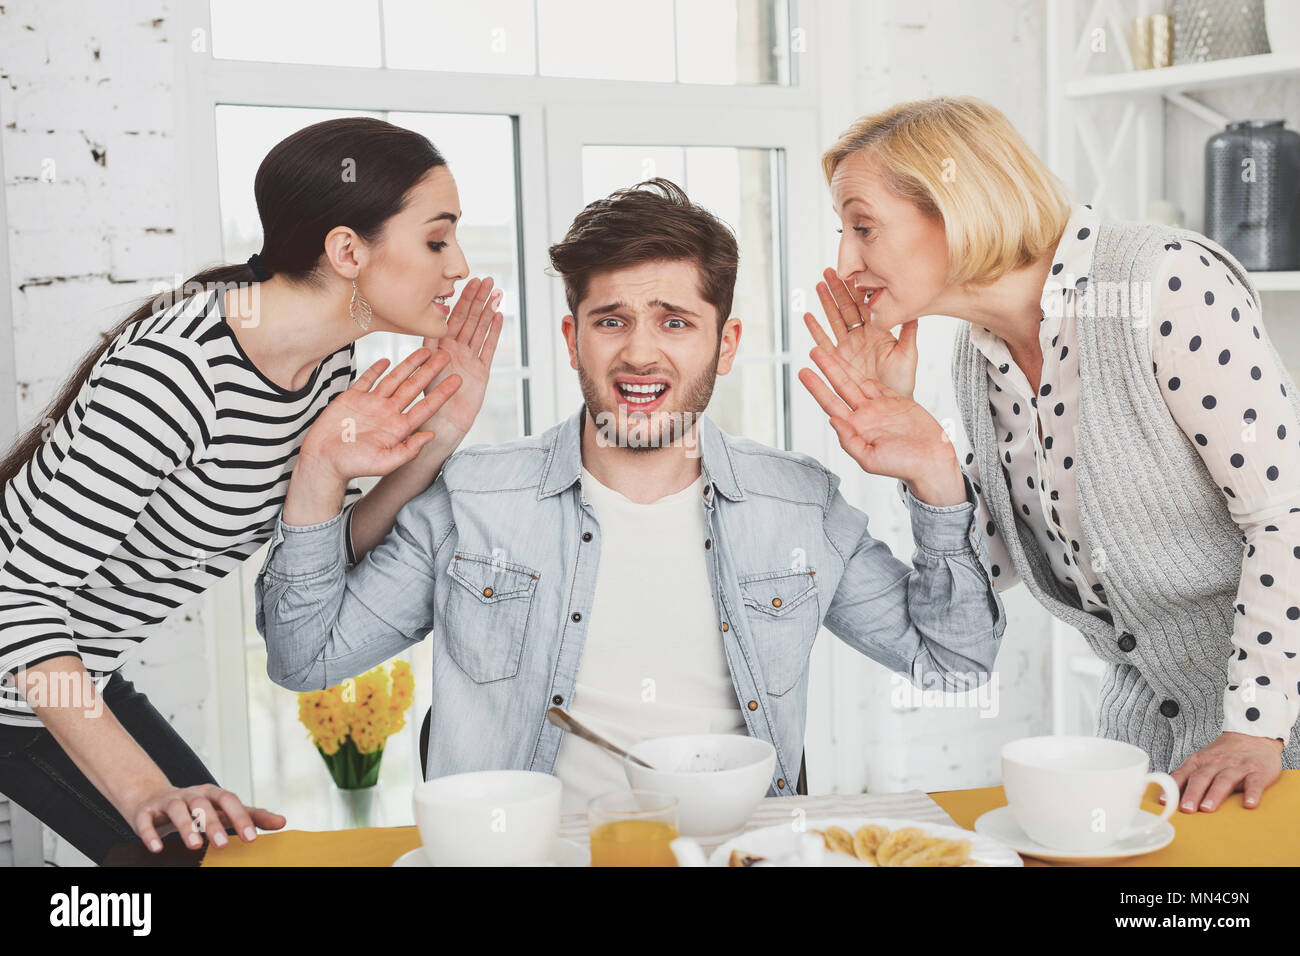 Cheerless unhappy man feeling stressed out - Stock Image